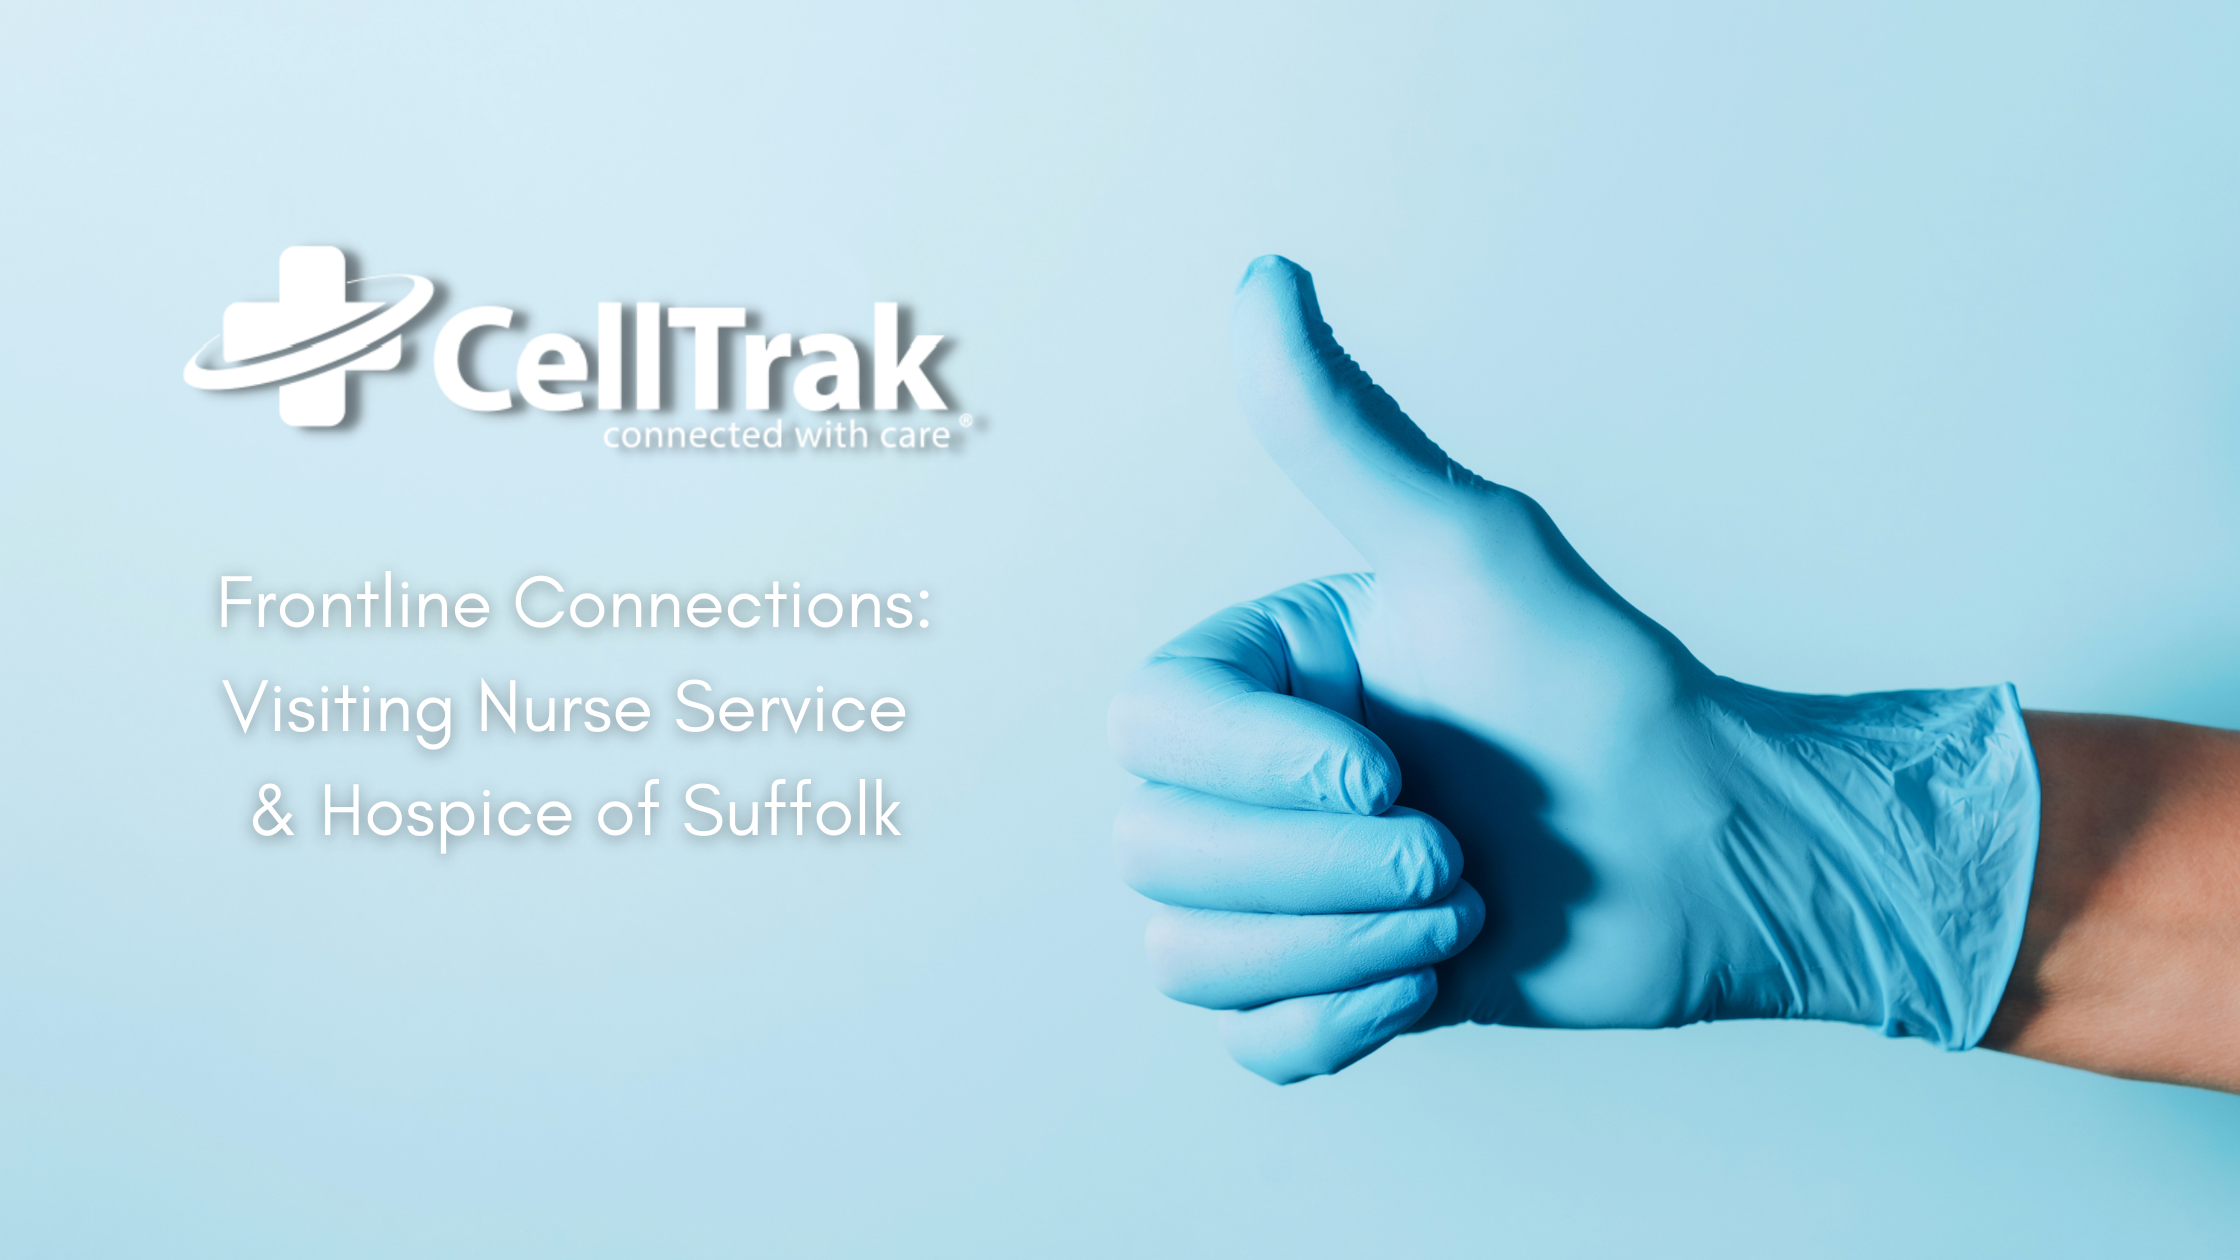 CellTrak Frontline Connections: VNS of Suffolk